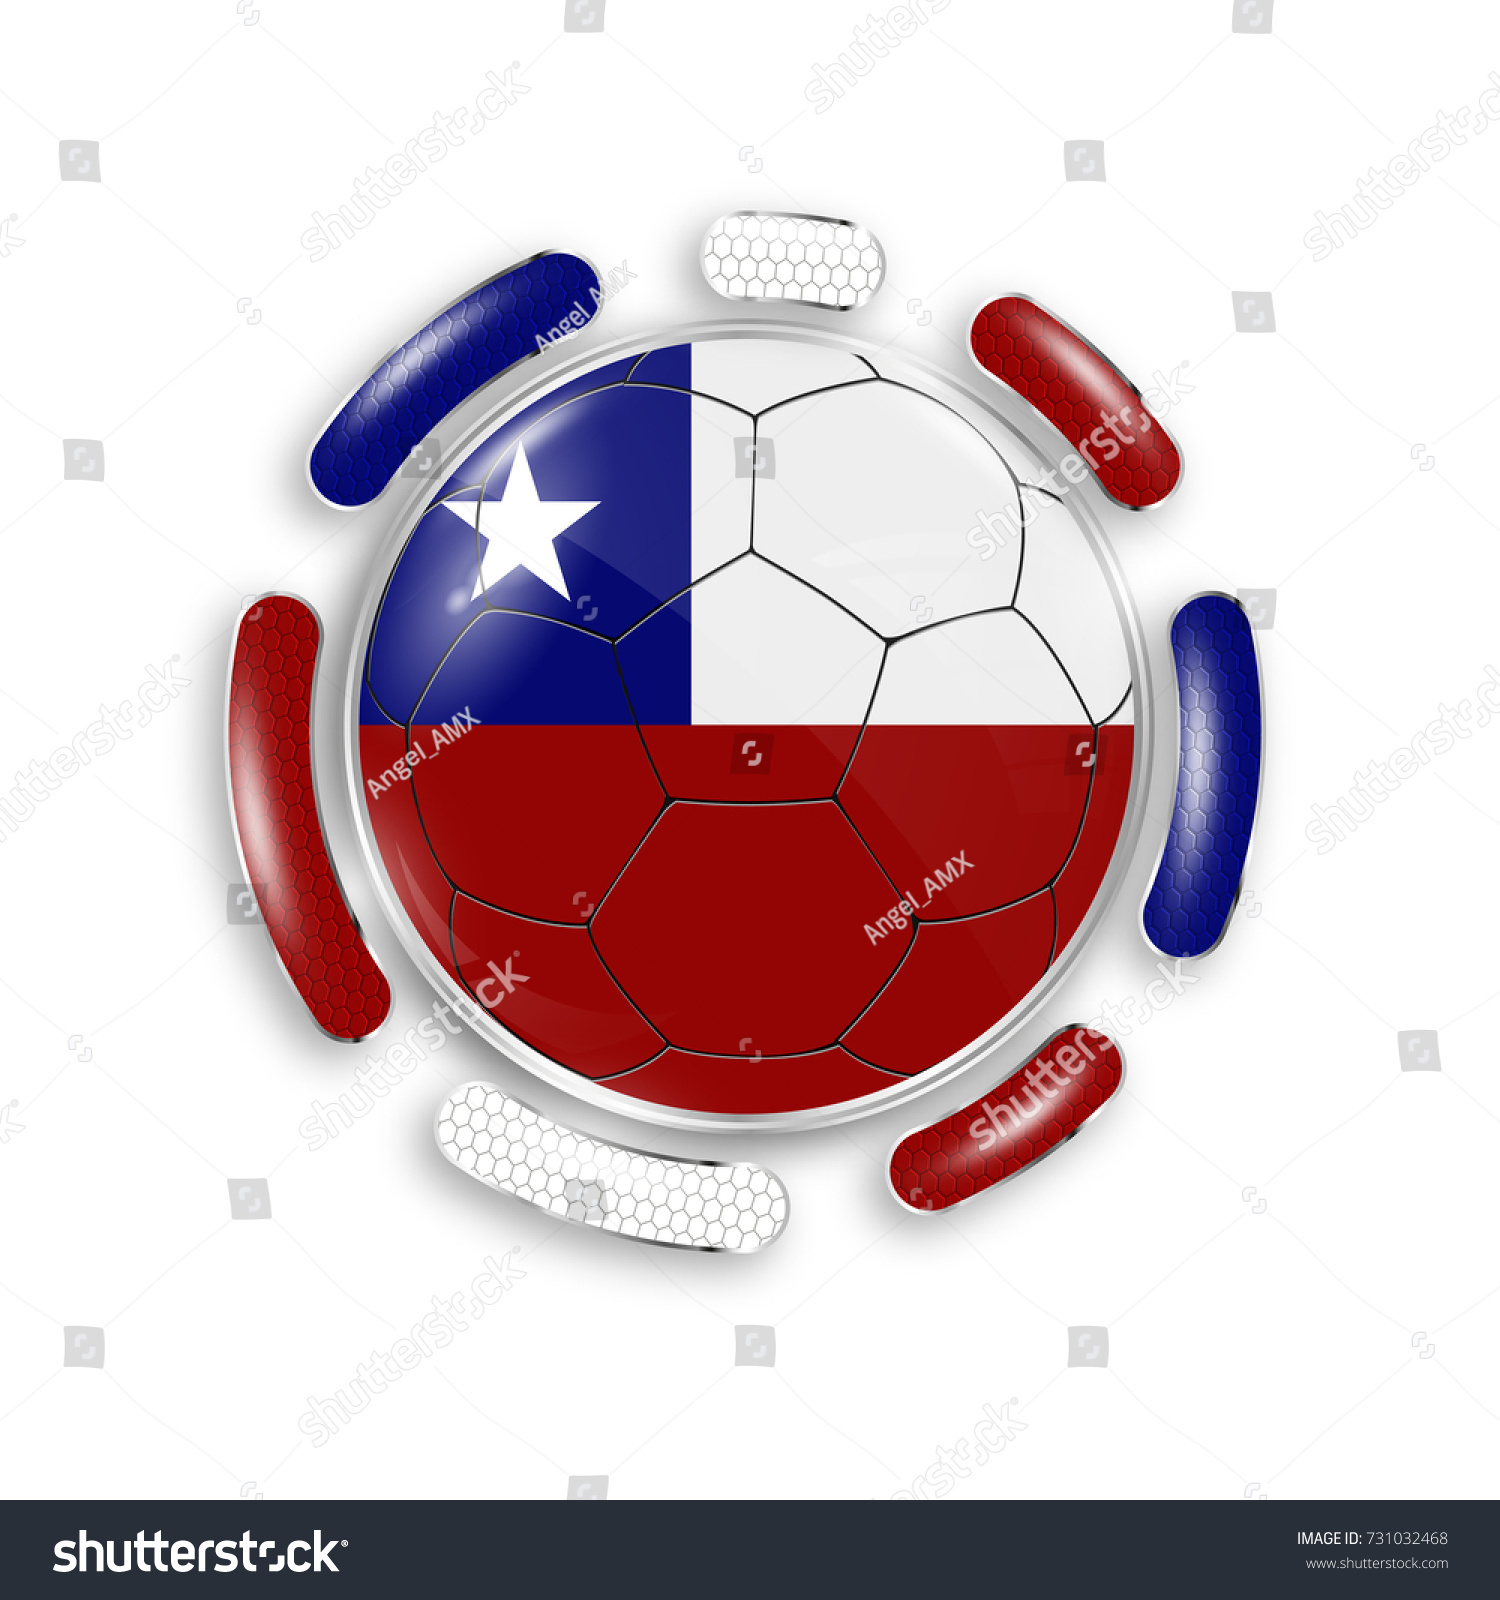 Soccer ball national flag chile modern stock vector 731032468 soccer ball with the national flag of chile modern emblem of soccer team realistic biocorpaavc Images